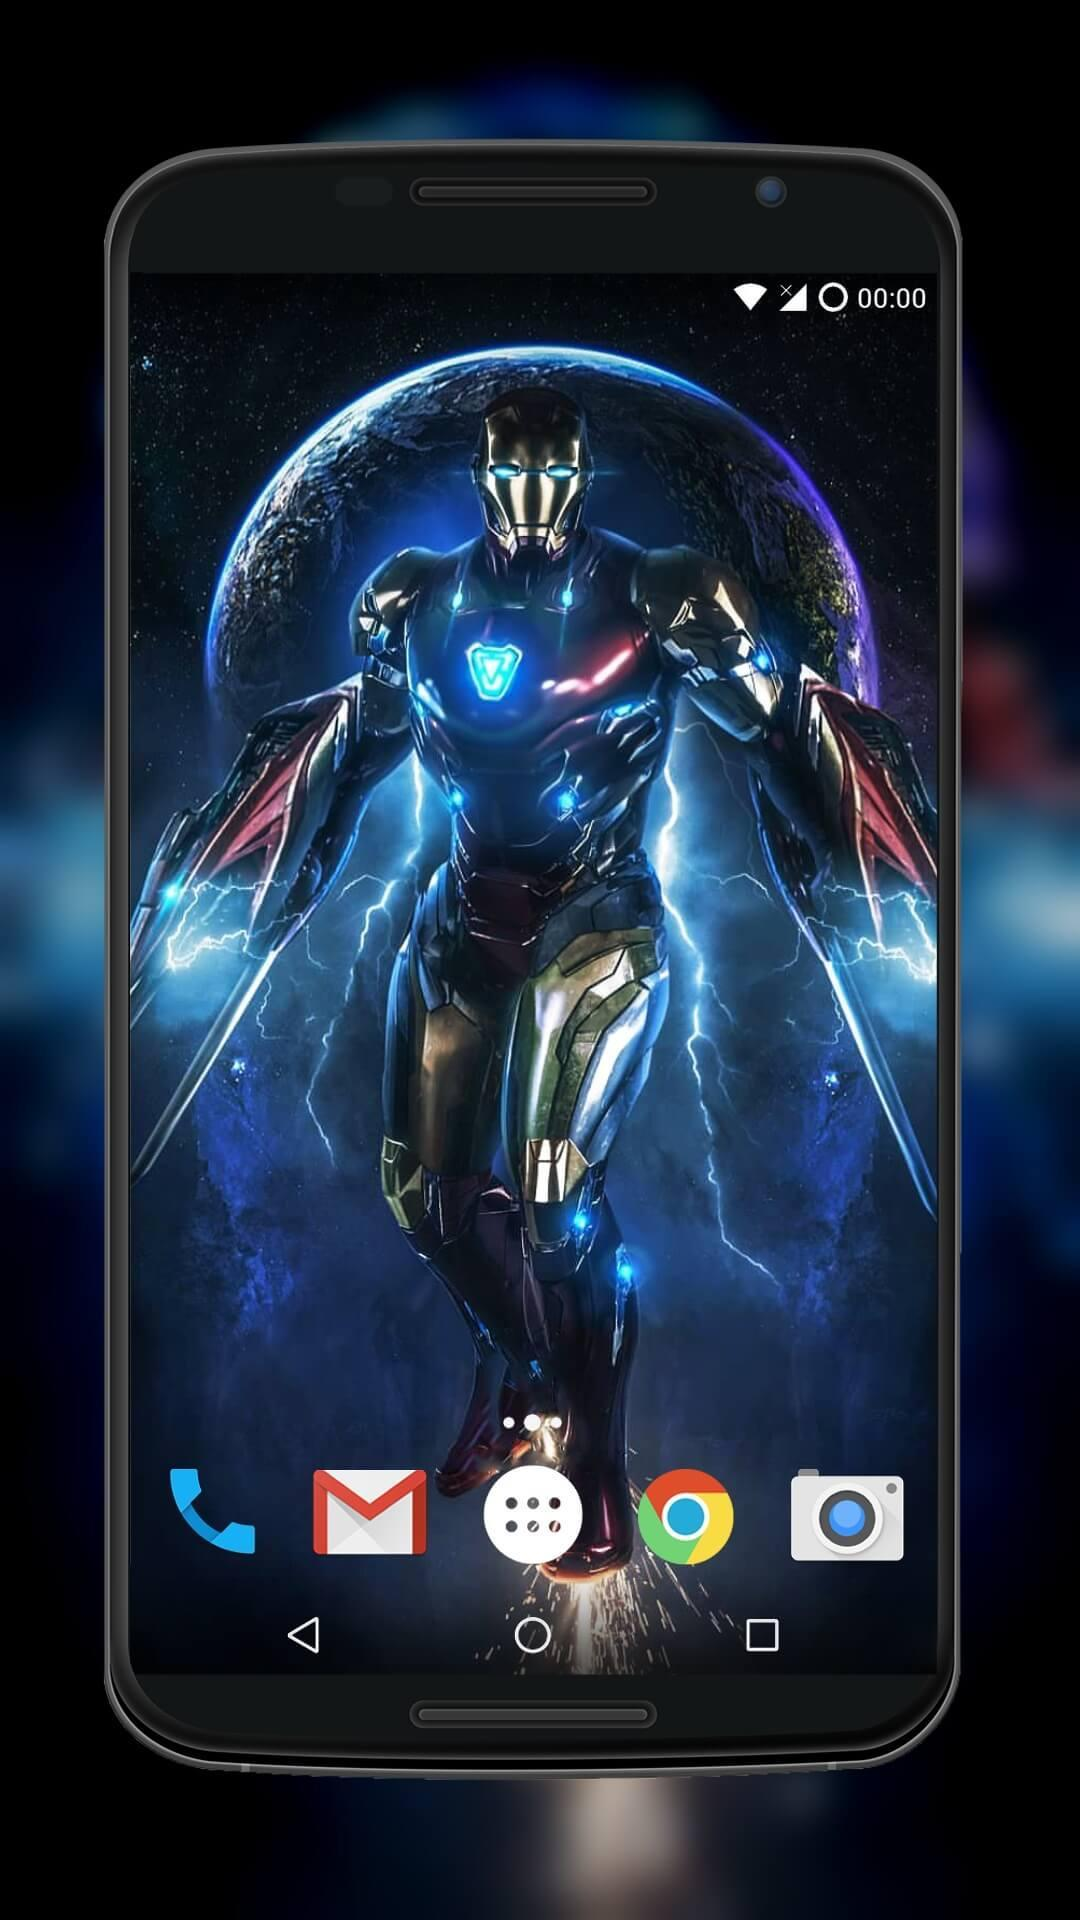 Avengers Endgame Wallpaper For Android Apk Download